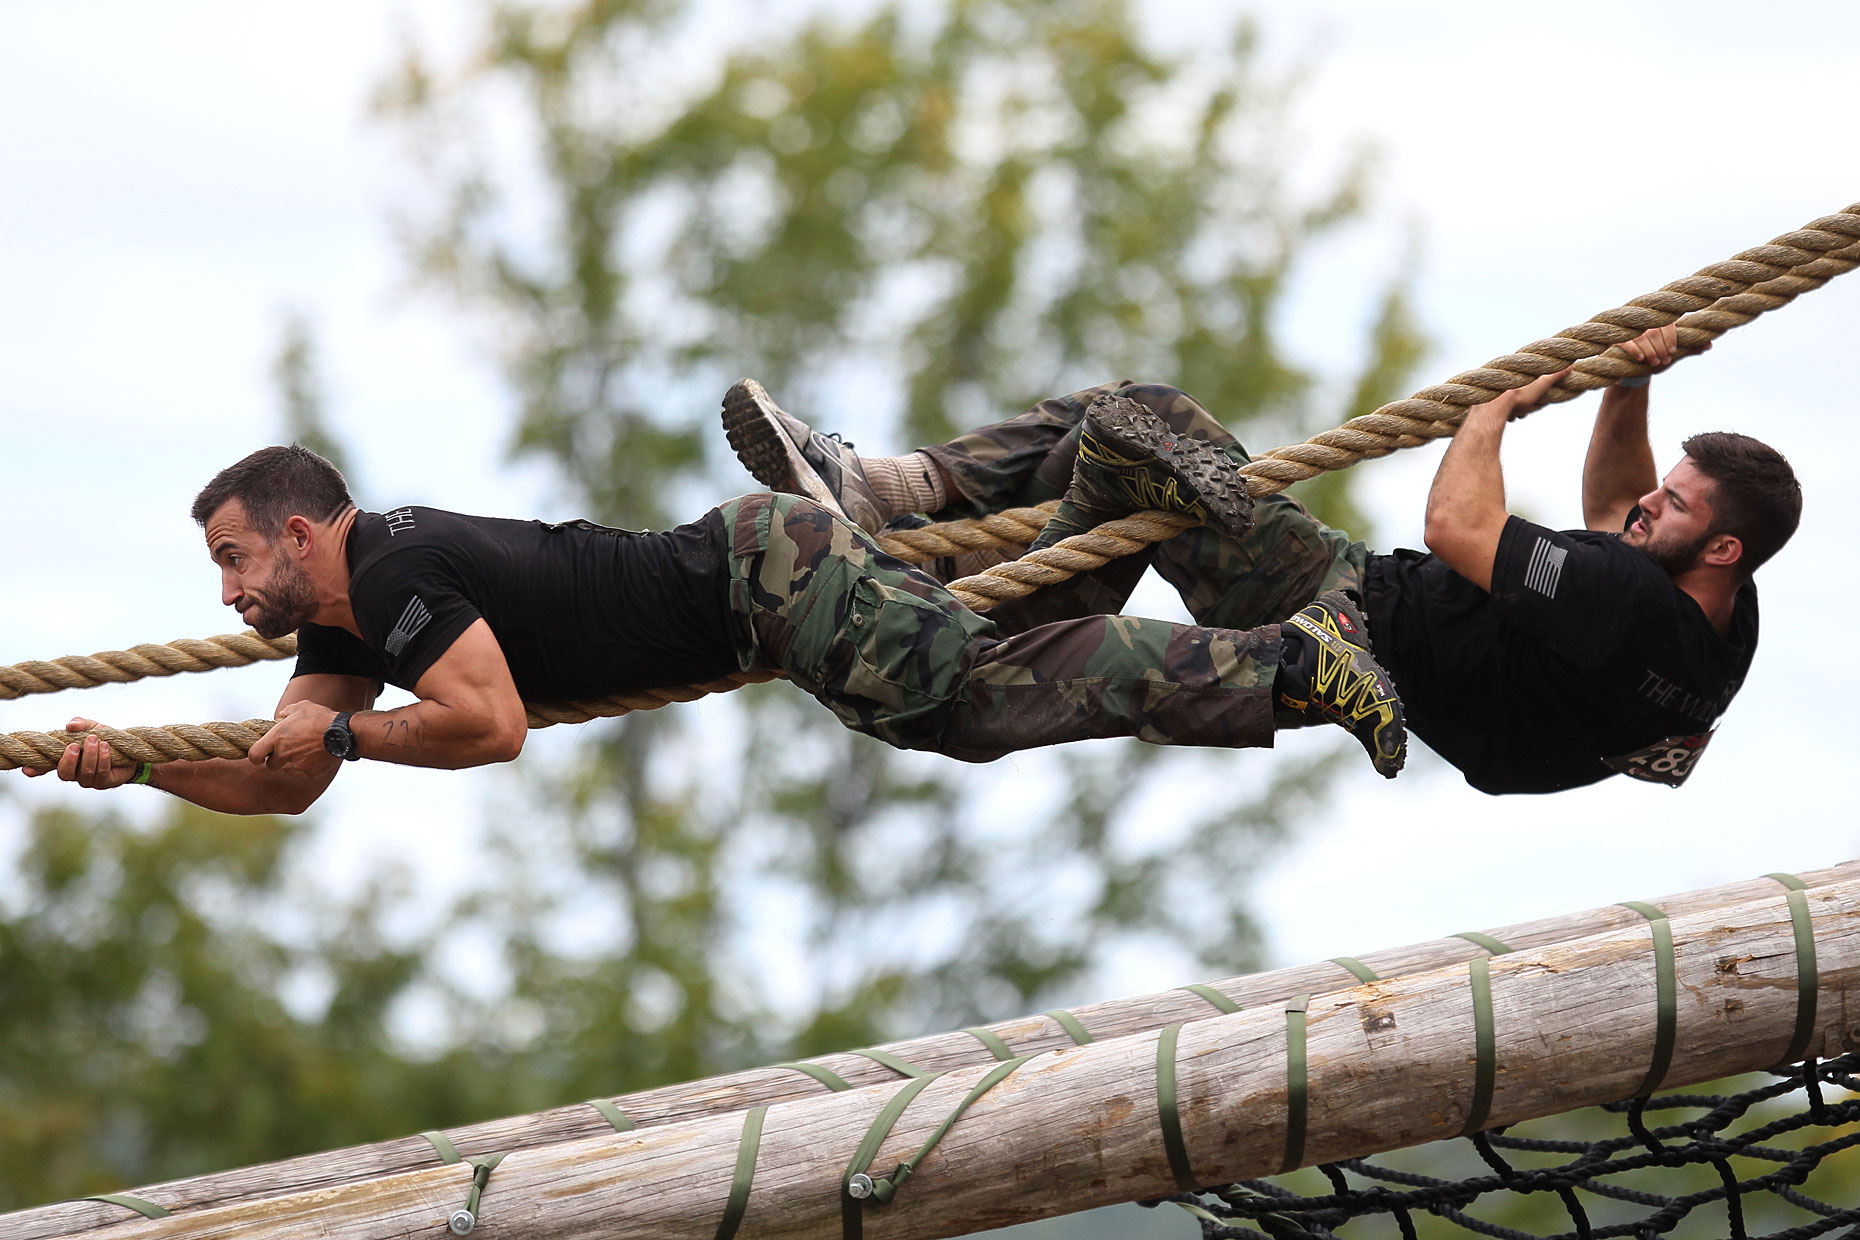 Competitors climb on a rope as part of an adventure competition.